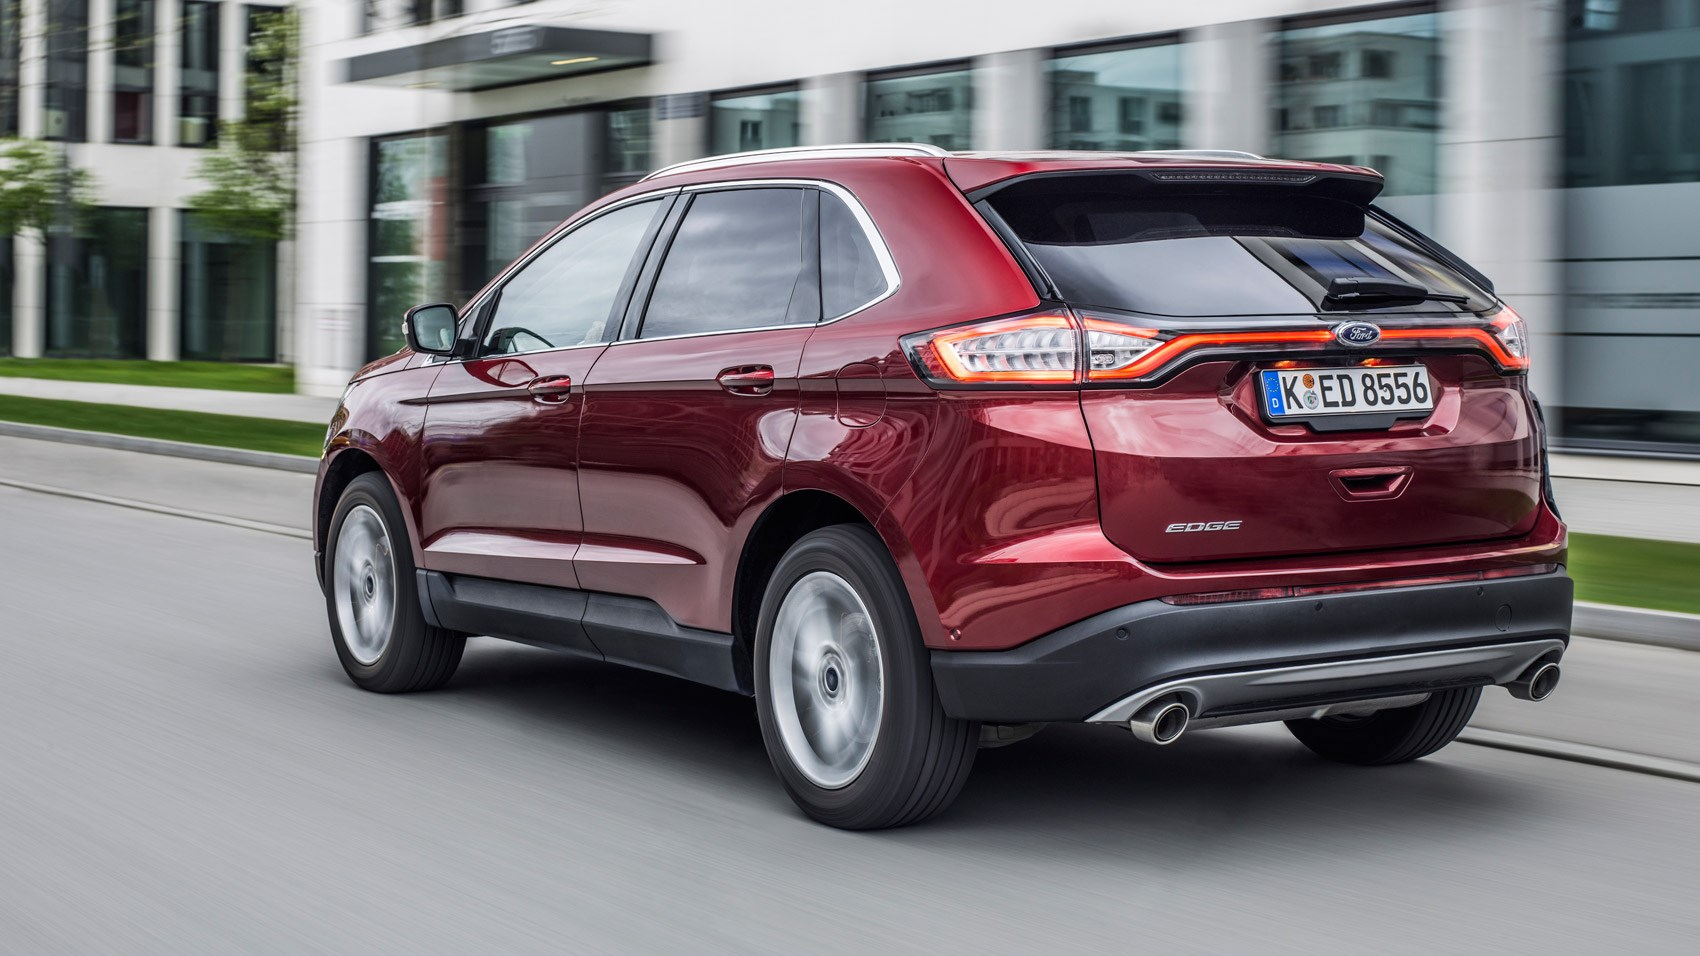 Ford Edge 20 TDCi Titanium Powershift 2016 review by CAR Magazine